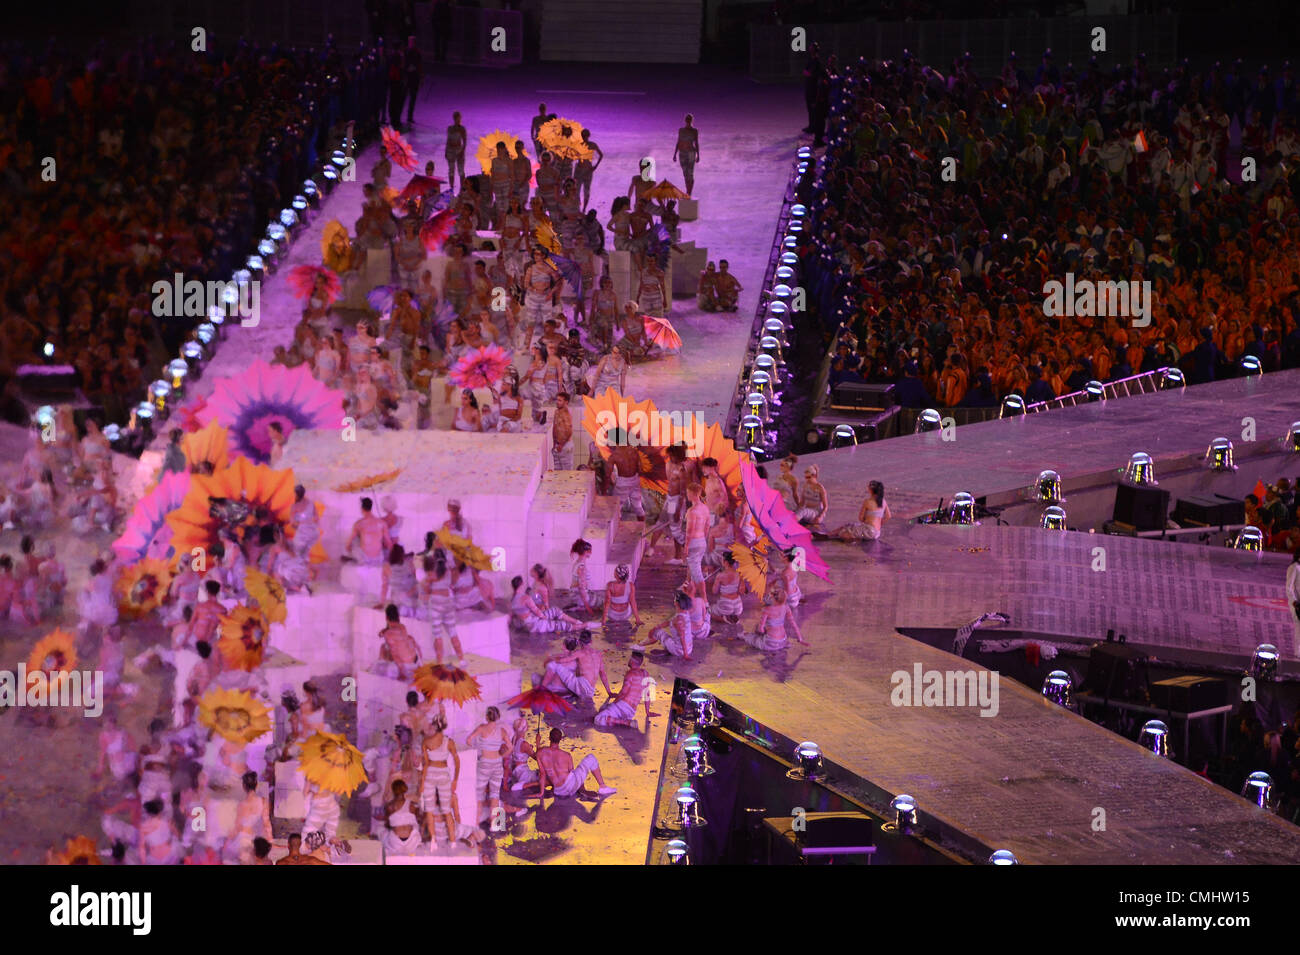 LONDON, ENGLAND - AUGUST 12, a general view during the closing ceremony of the London 2012 Olympic Games at the - Stock Image